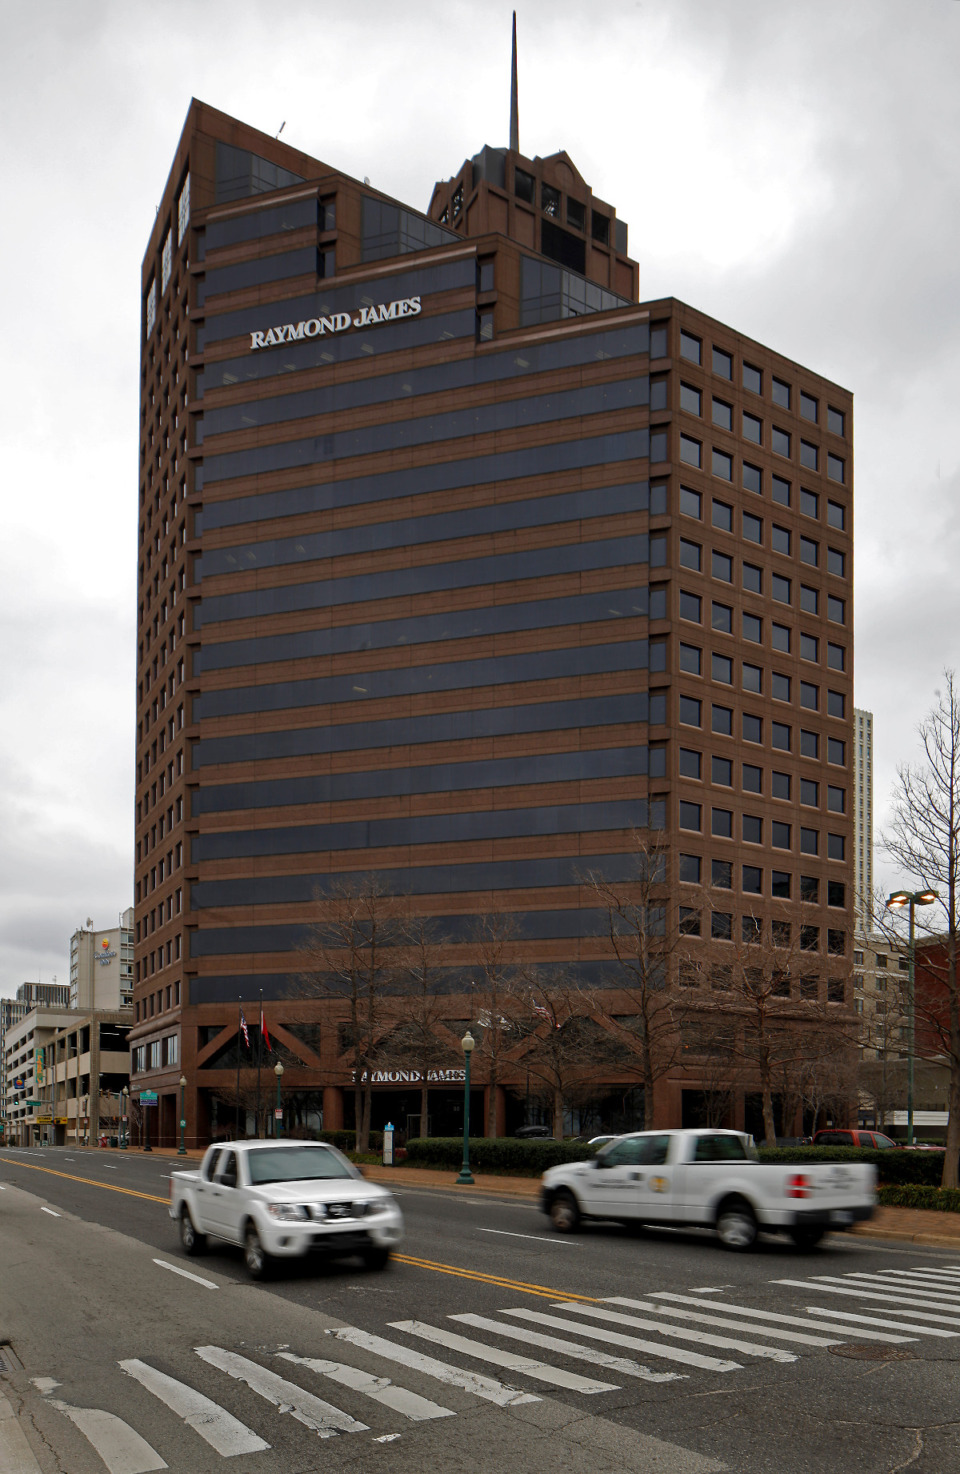 <strong>A revamp of 50 N. Front St. will transform what is currently called the Raymond James Tower into a mostly residential building with some commercial space on the lower floors.&nbsp;</strong>(Lance Murphey/Daily Memphian file)